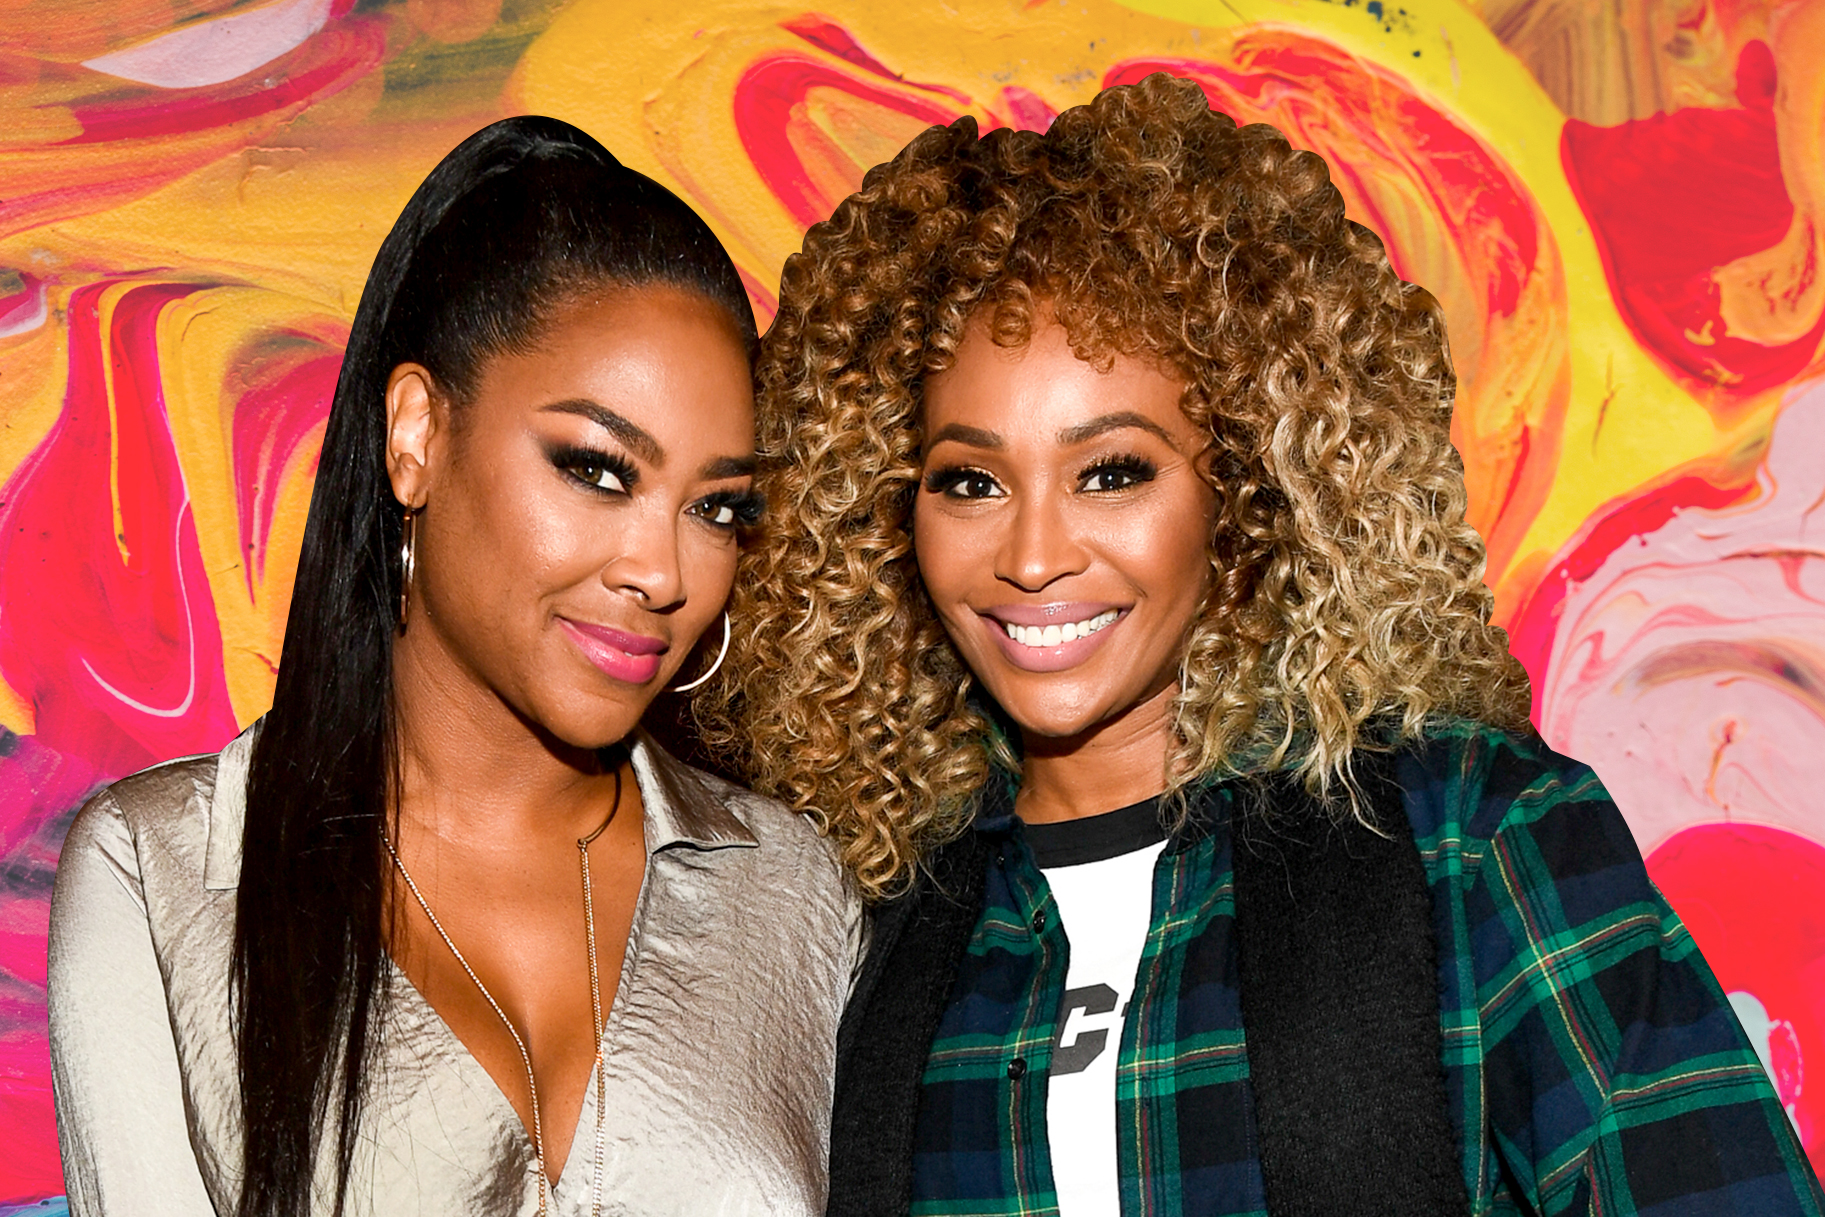 Cynthia Bailey Poses With Kenya Moore But The Spotlight Is Stolen By Baby PJ And Brookie